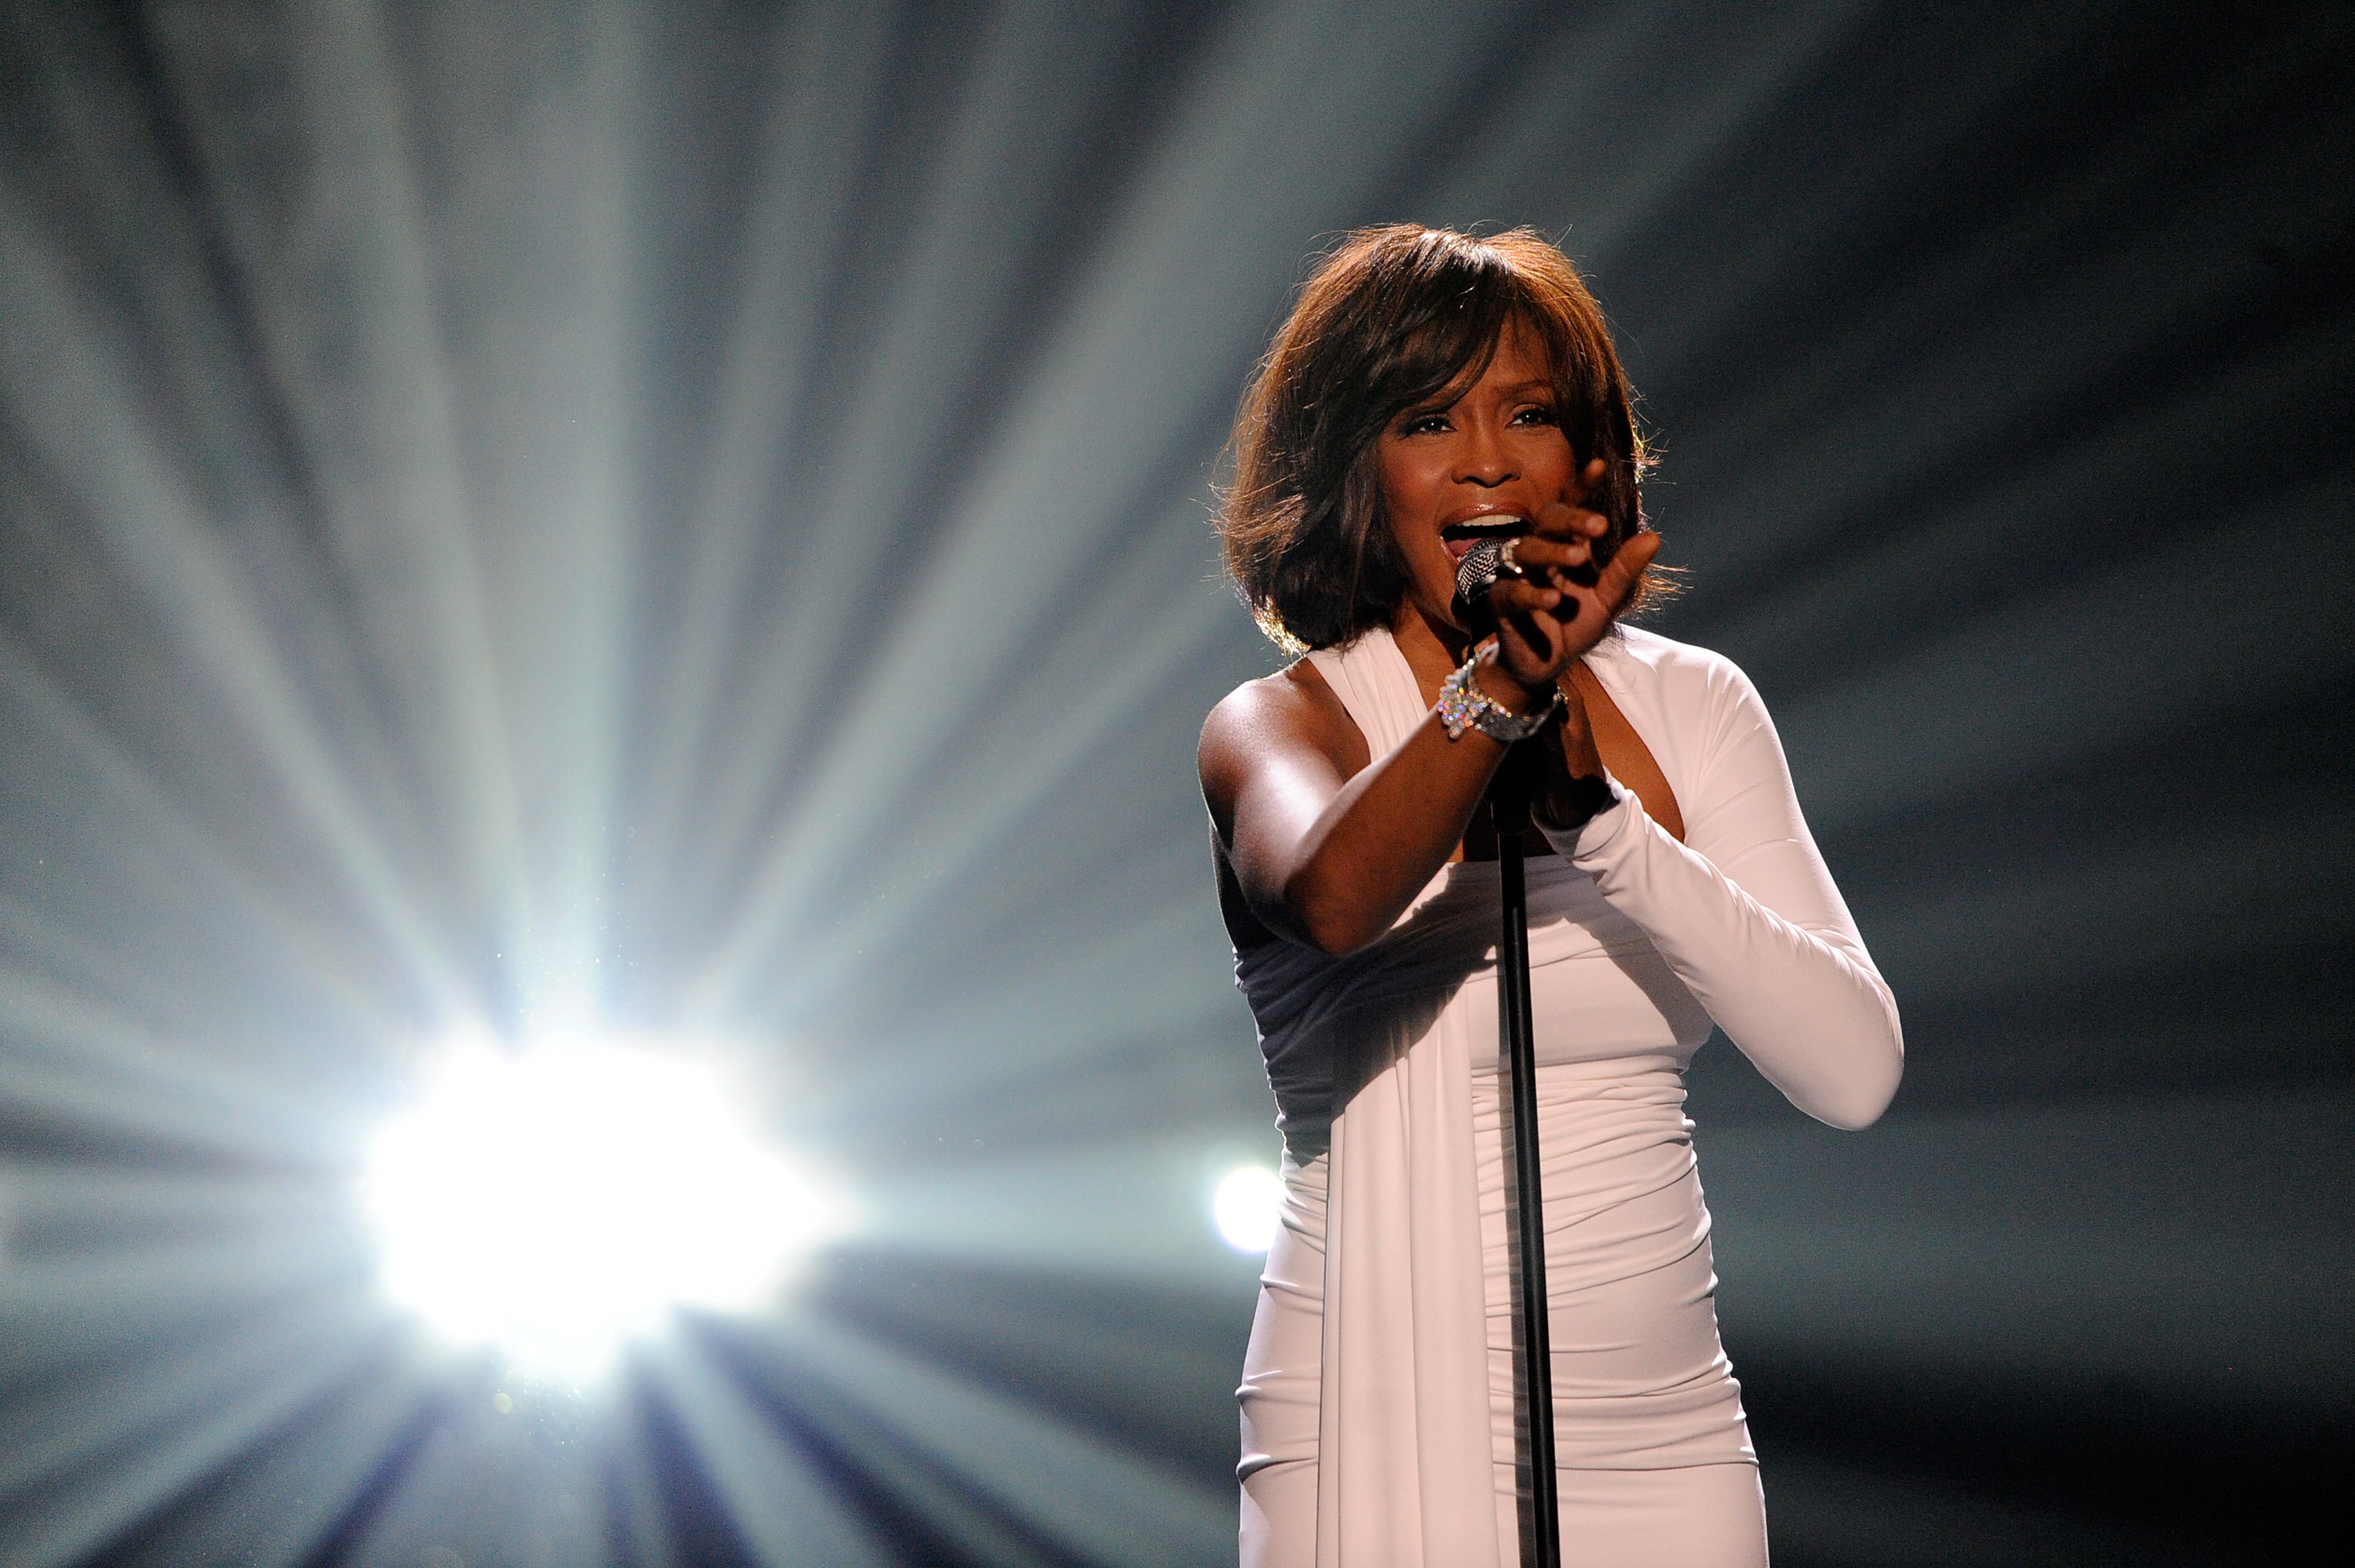 Whitney Houston hologram tour is already creeping people out